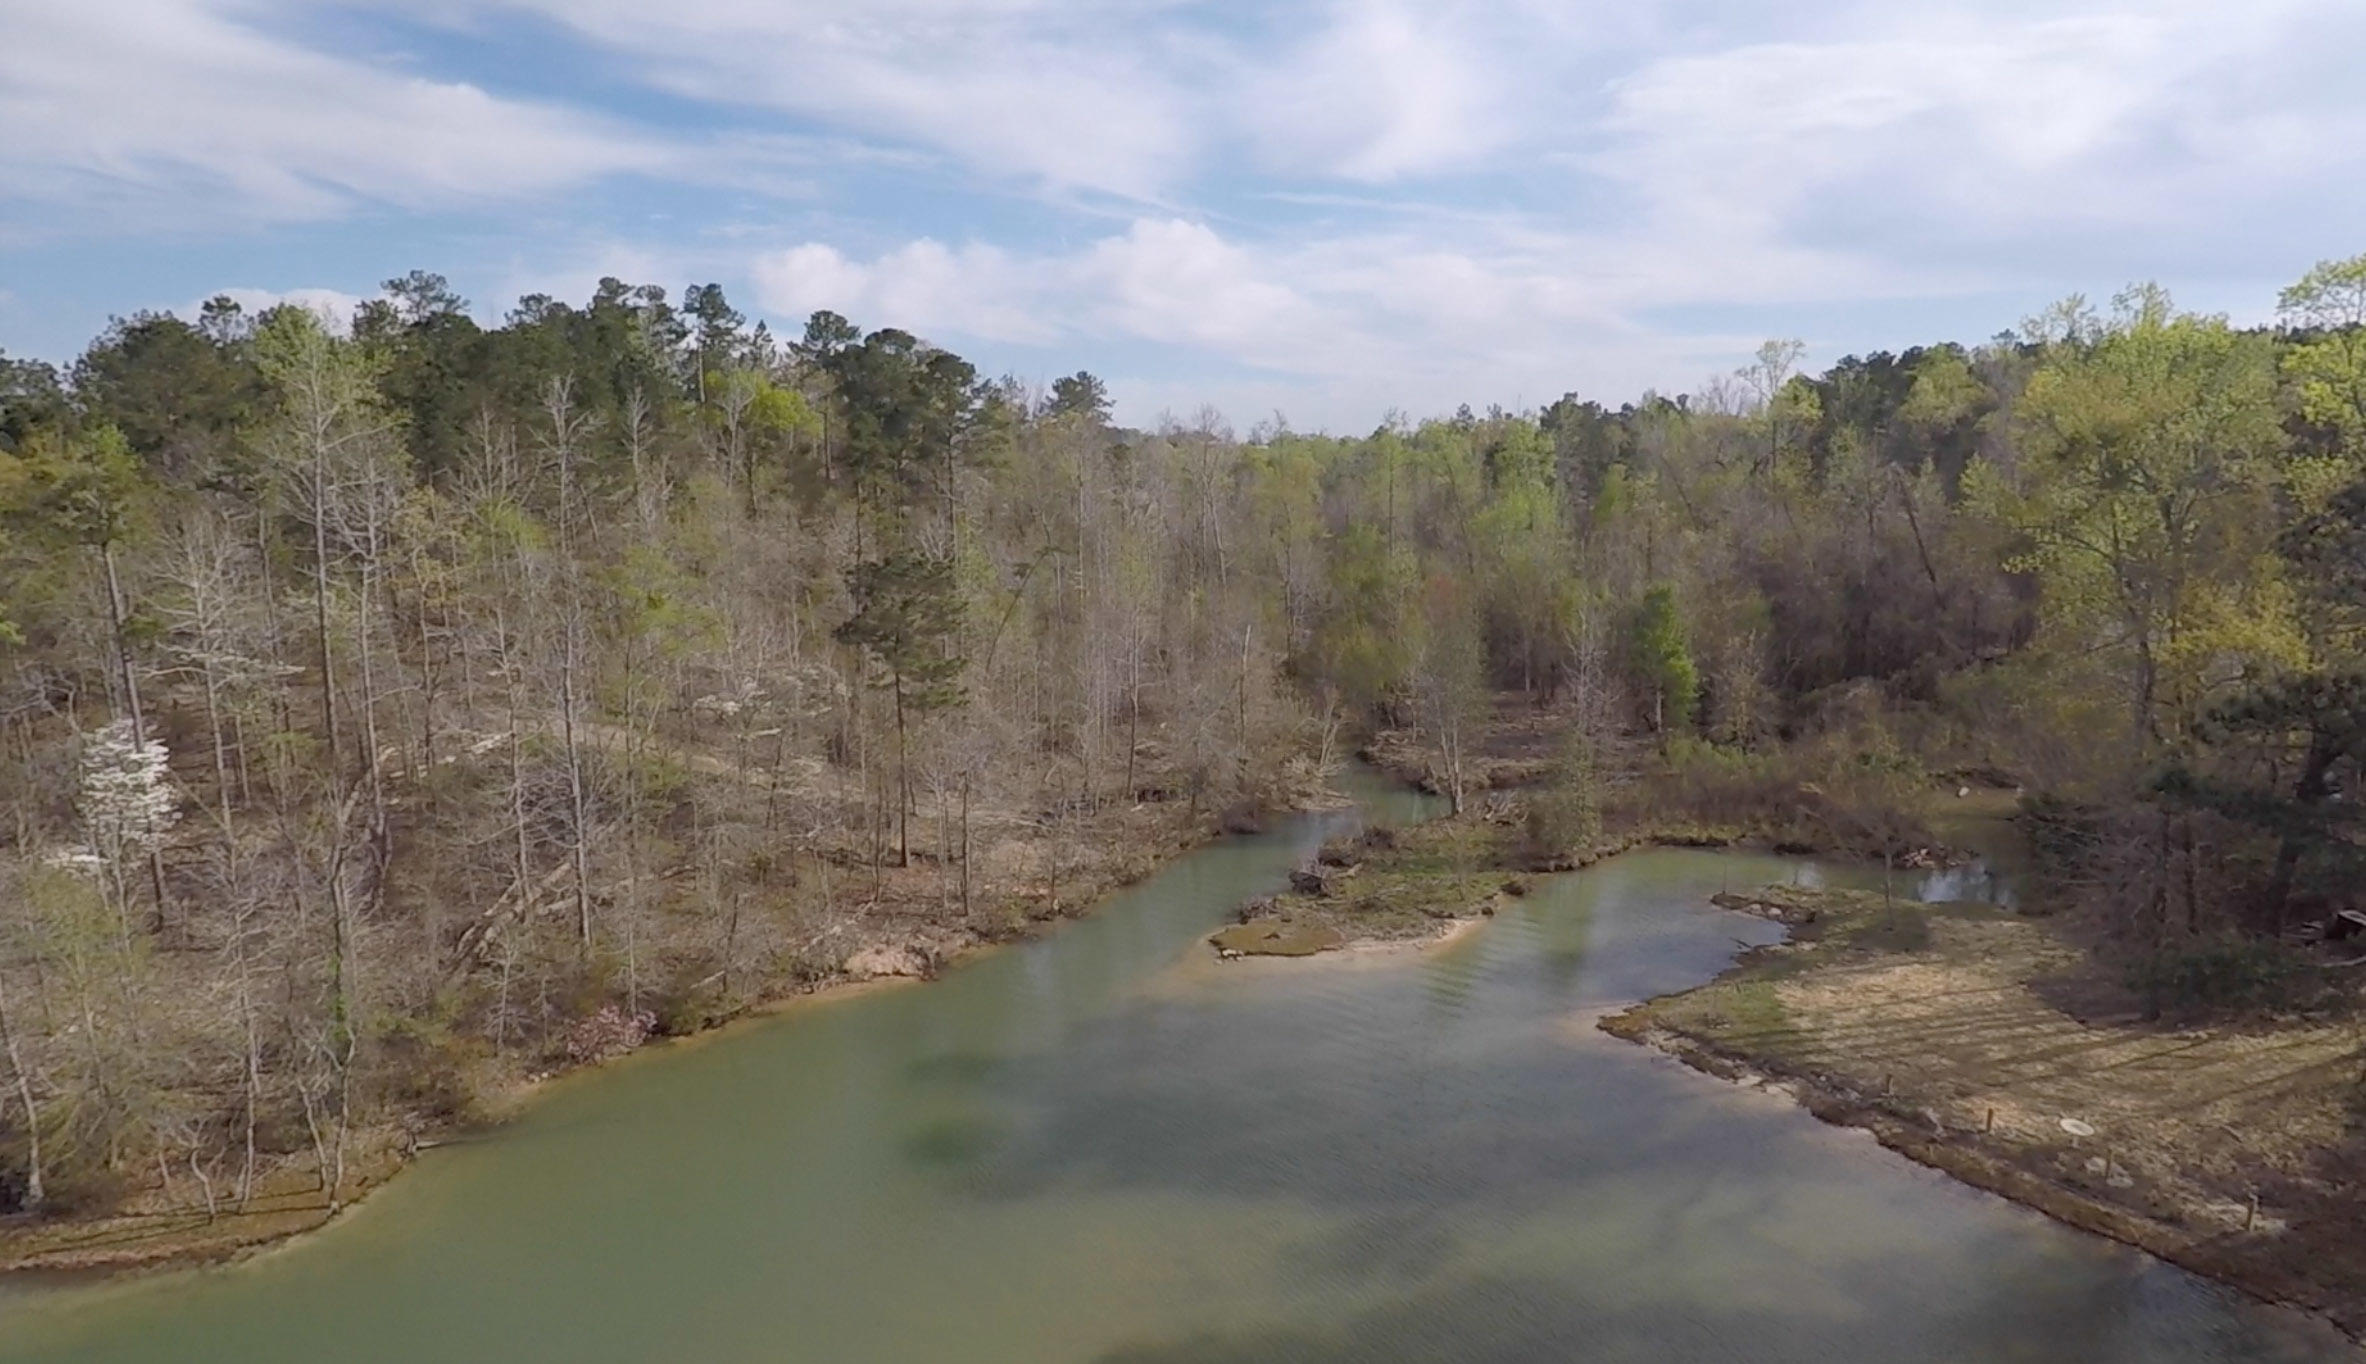 Lot 1 Indian Campground Rd, Eclectic, AL 36024